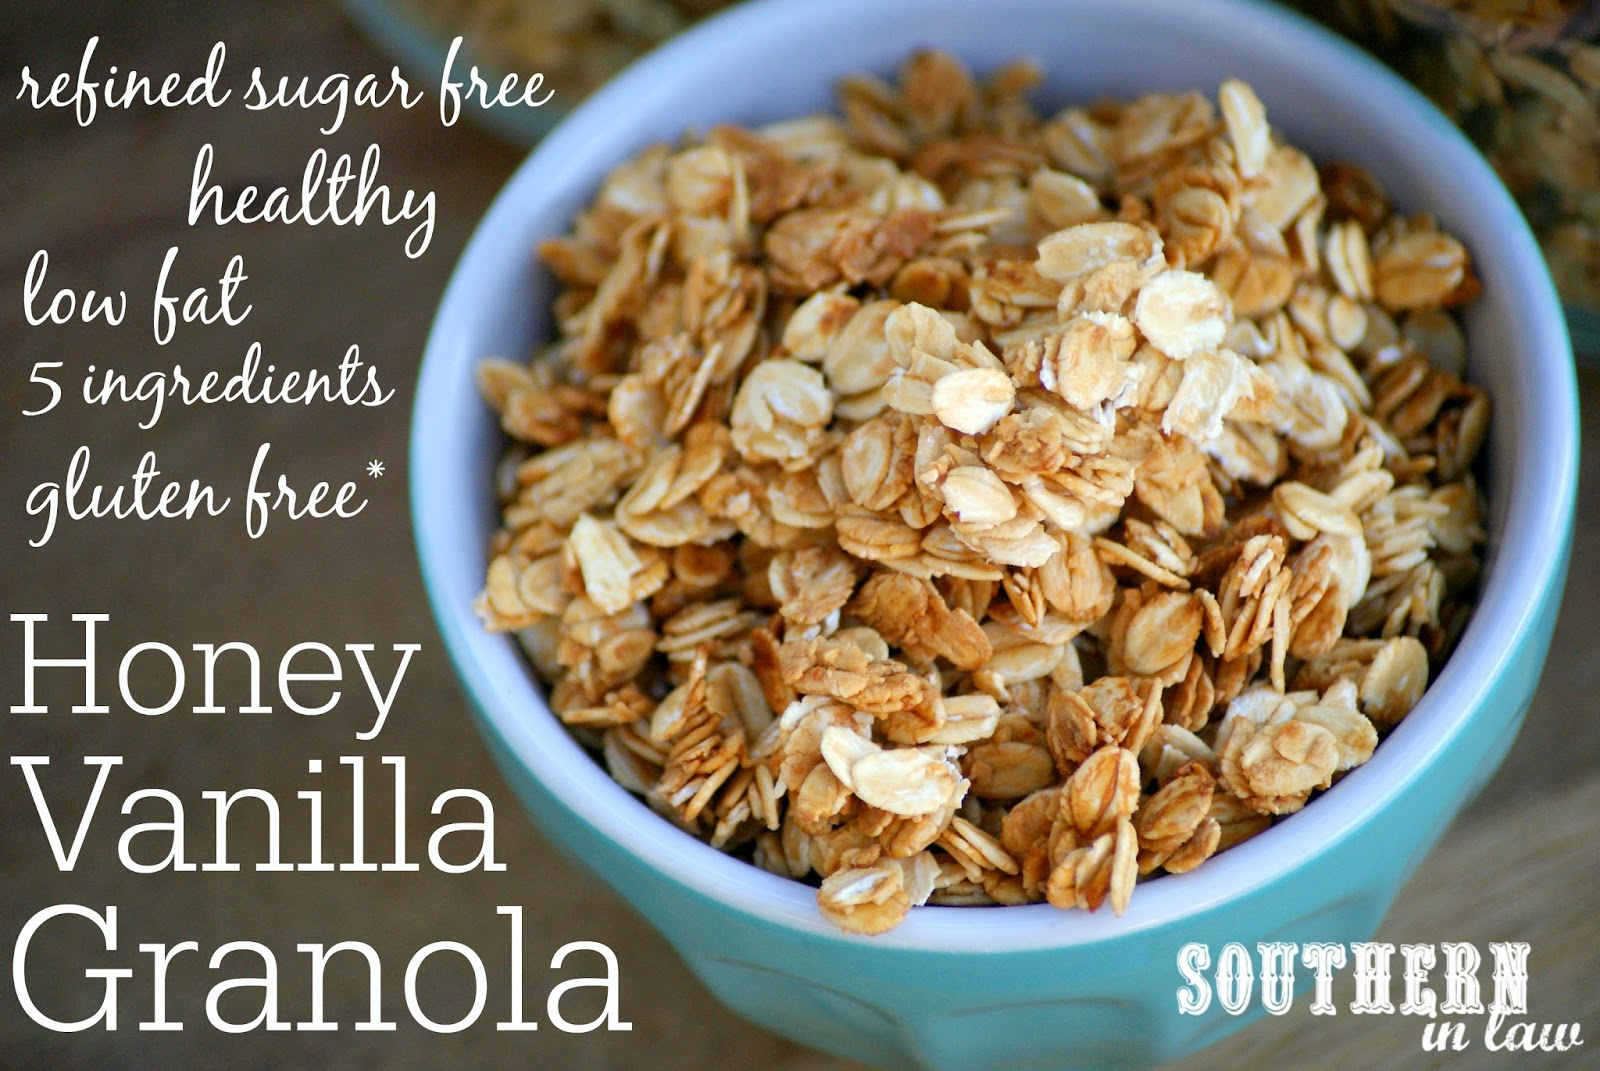 Southern in law recipe healthy homemade honey vanilla granola good granola is expensive however so this cereal killing habit can get quite expensive thats why granola was always a treat in the sil house until ccuart Choice Image